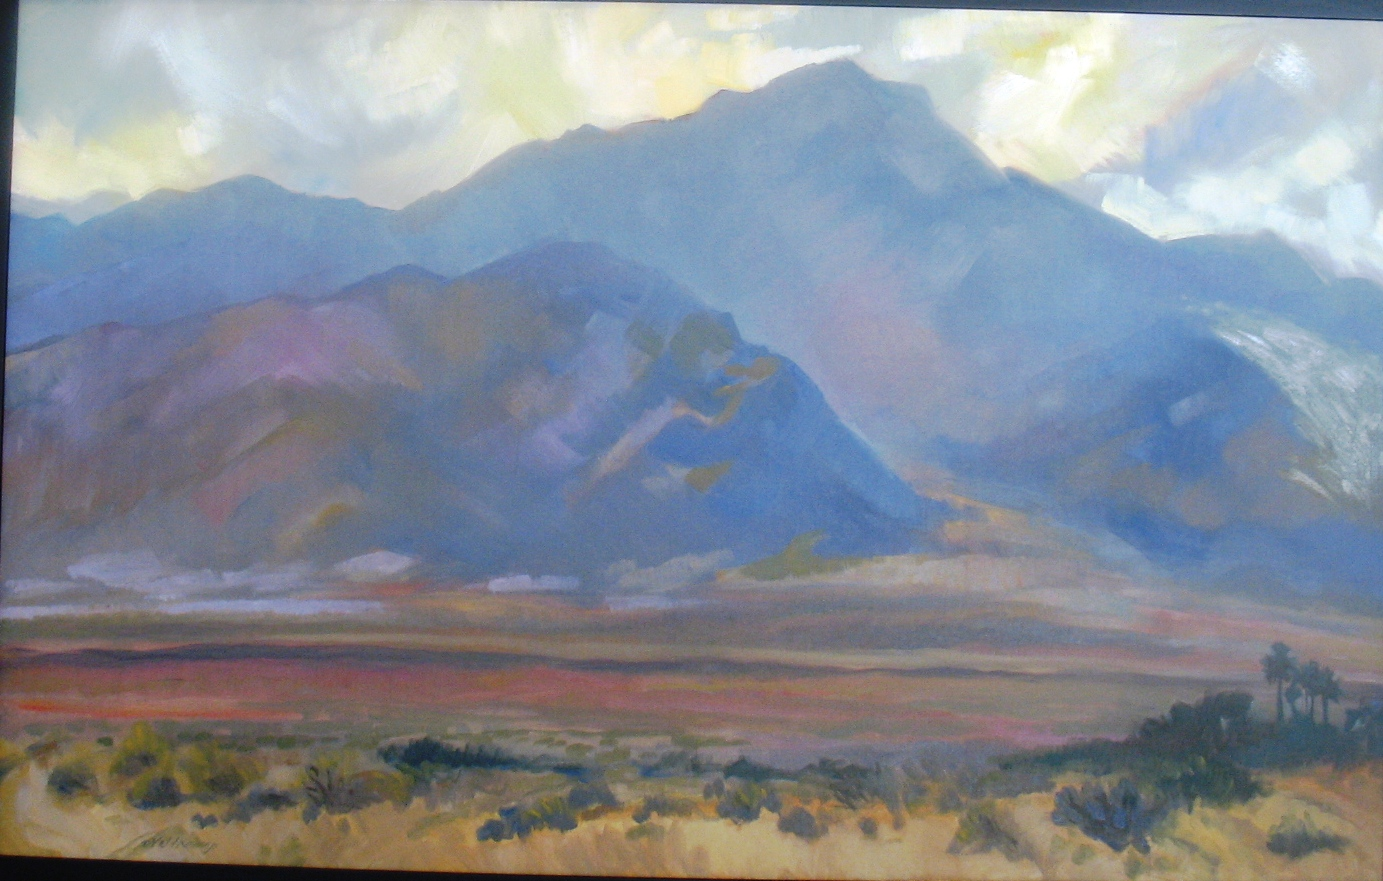 San Jacinto Mountains, oil on canvas, 30 x 40 inches